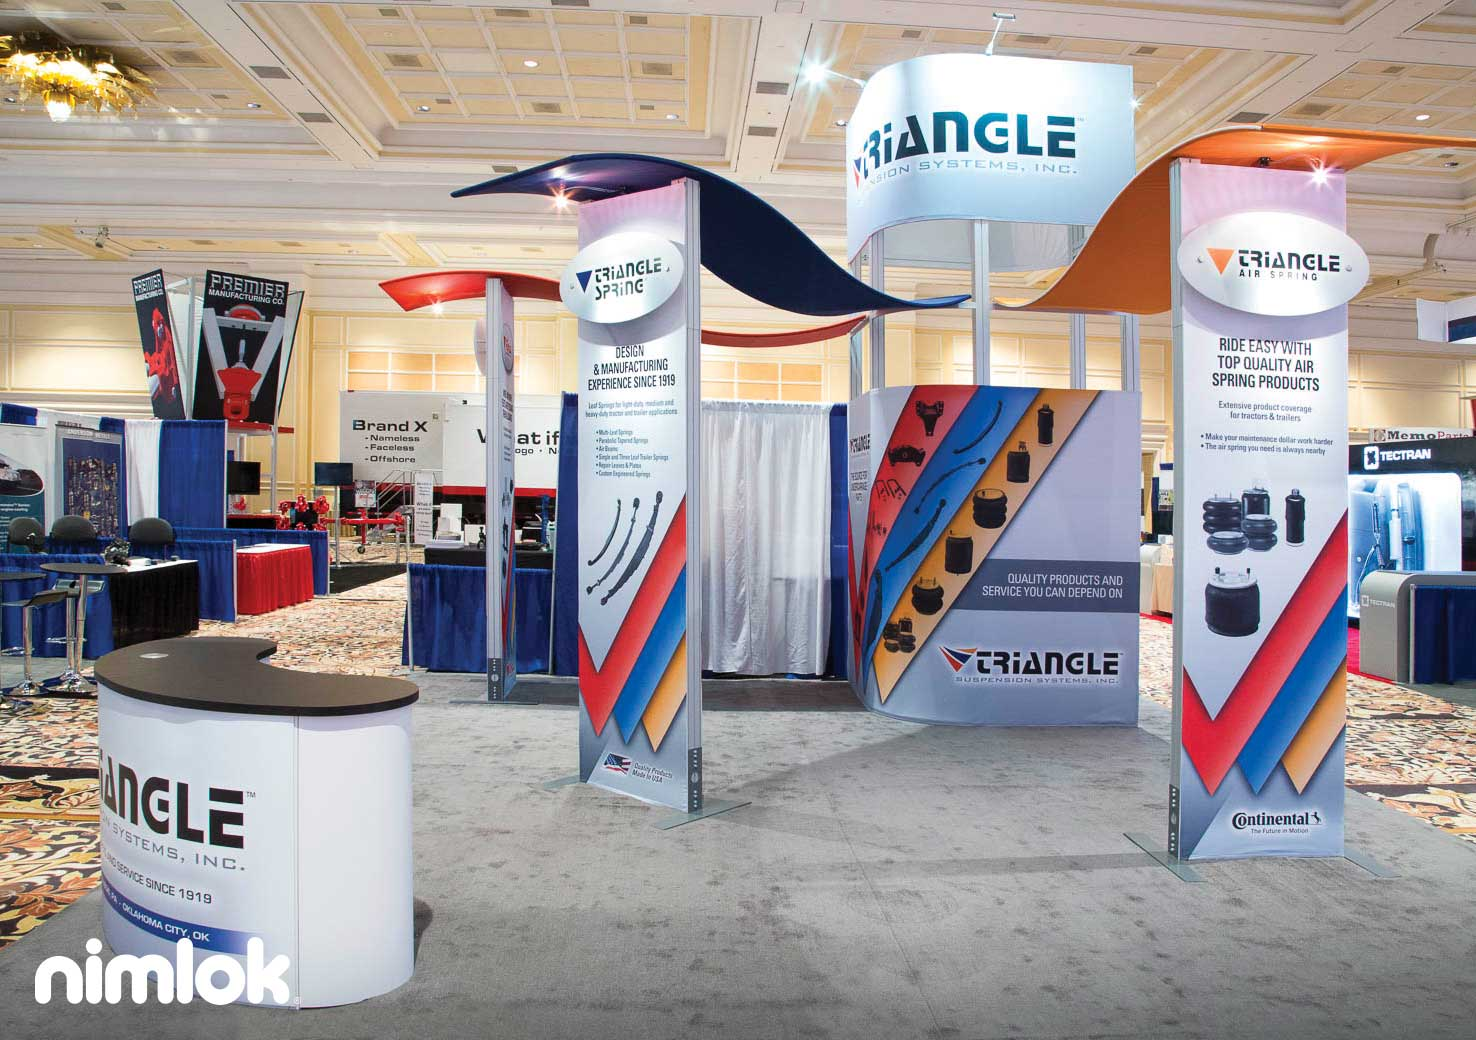 Trade Show Booth Layout : Exhibit design ideas inspiration trade show displays